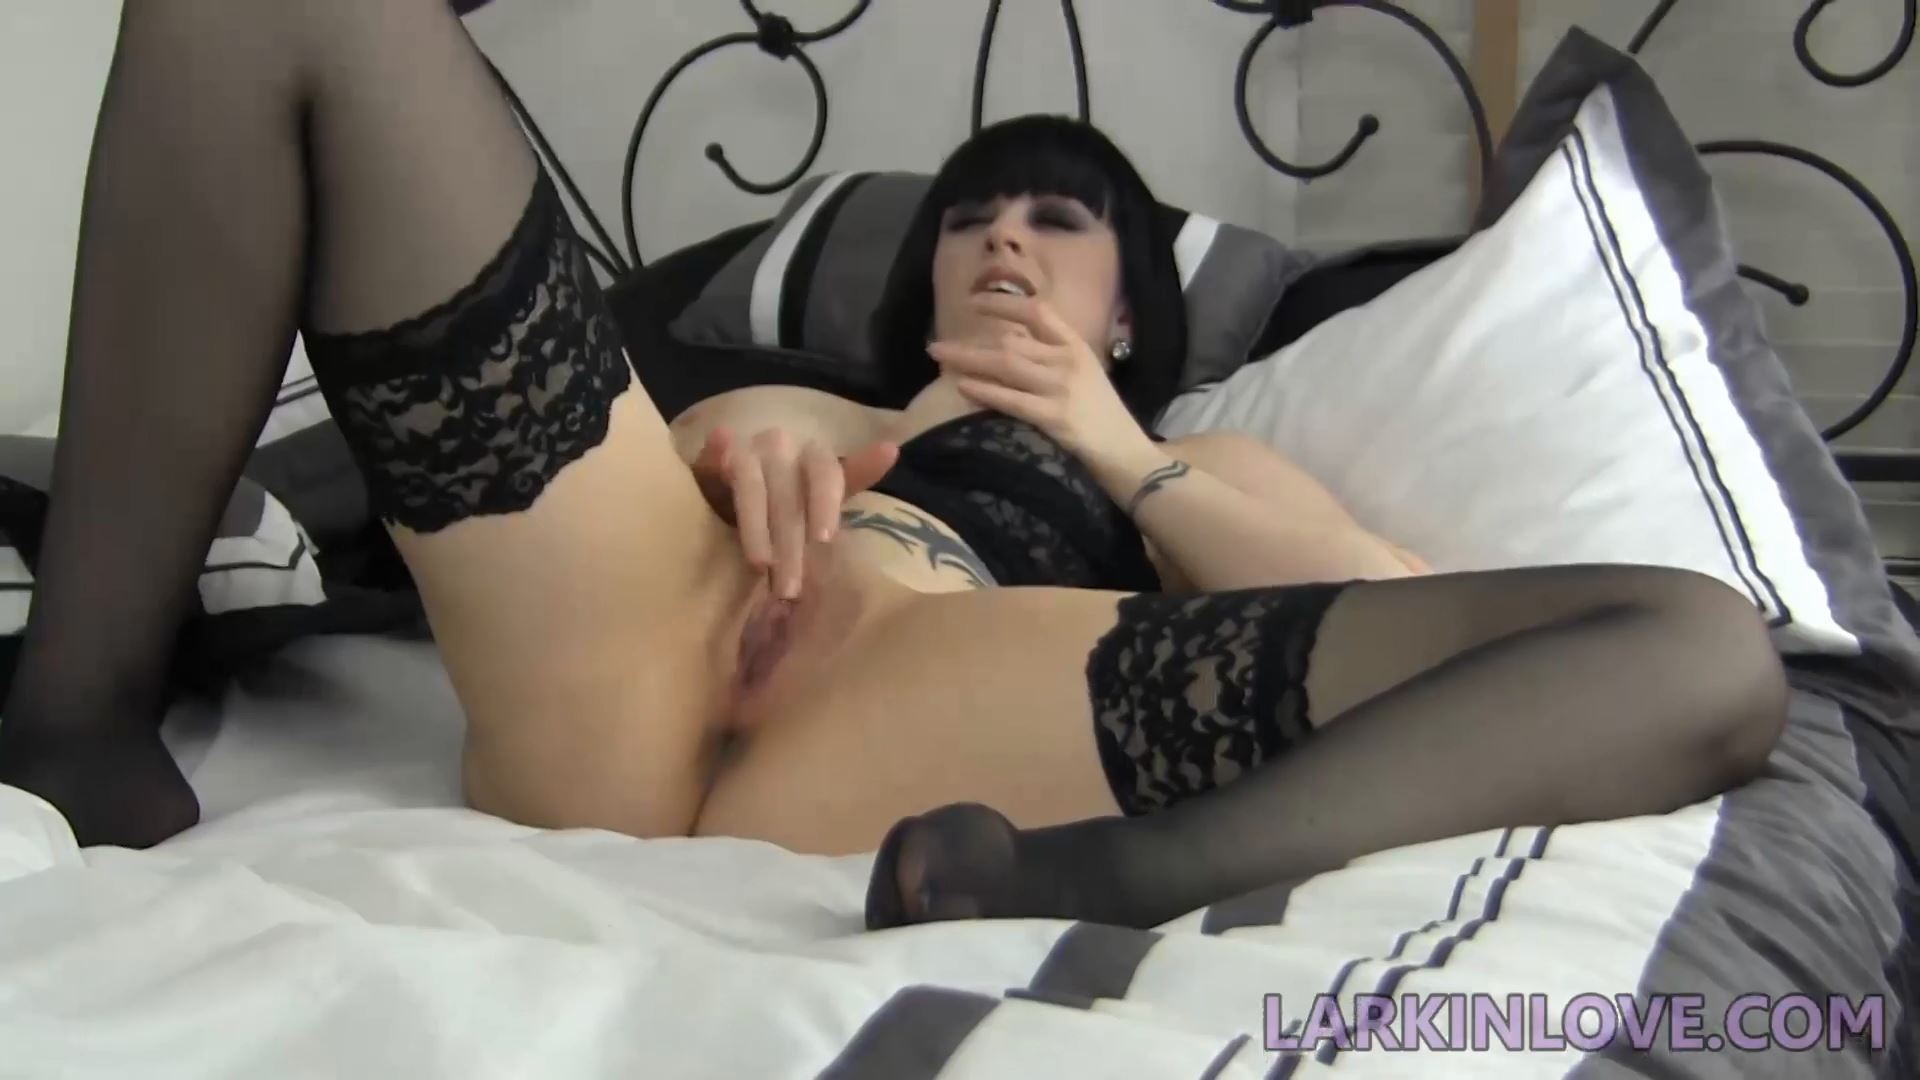 Larkin Love In Scene: Gummi Vore Masturbation - LARKINLOVE / CLIPS4SALE / QUEEN BITCH LARKIN - FULL HD/1080p/MP4